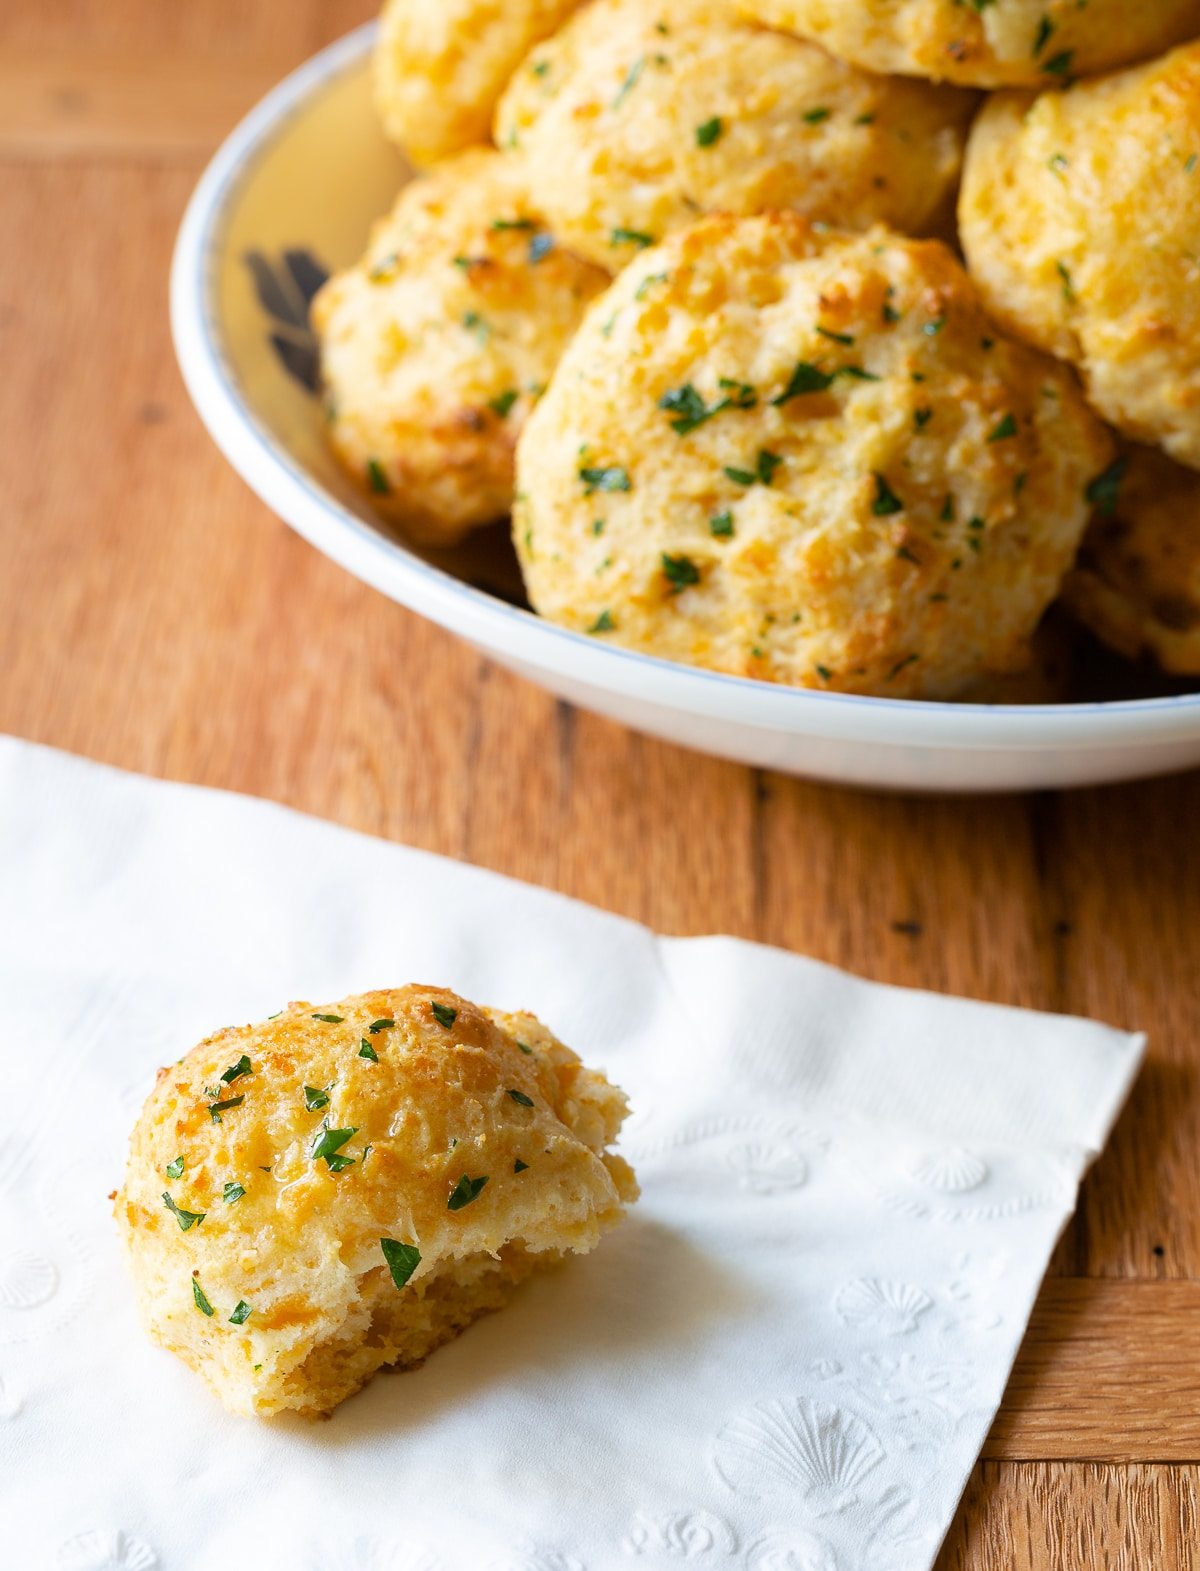 Old Bay Biscuits with Cheddar Cheese and Garlic #aspicyperspective